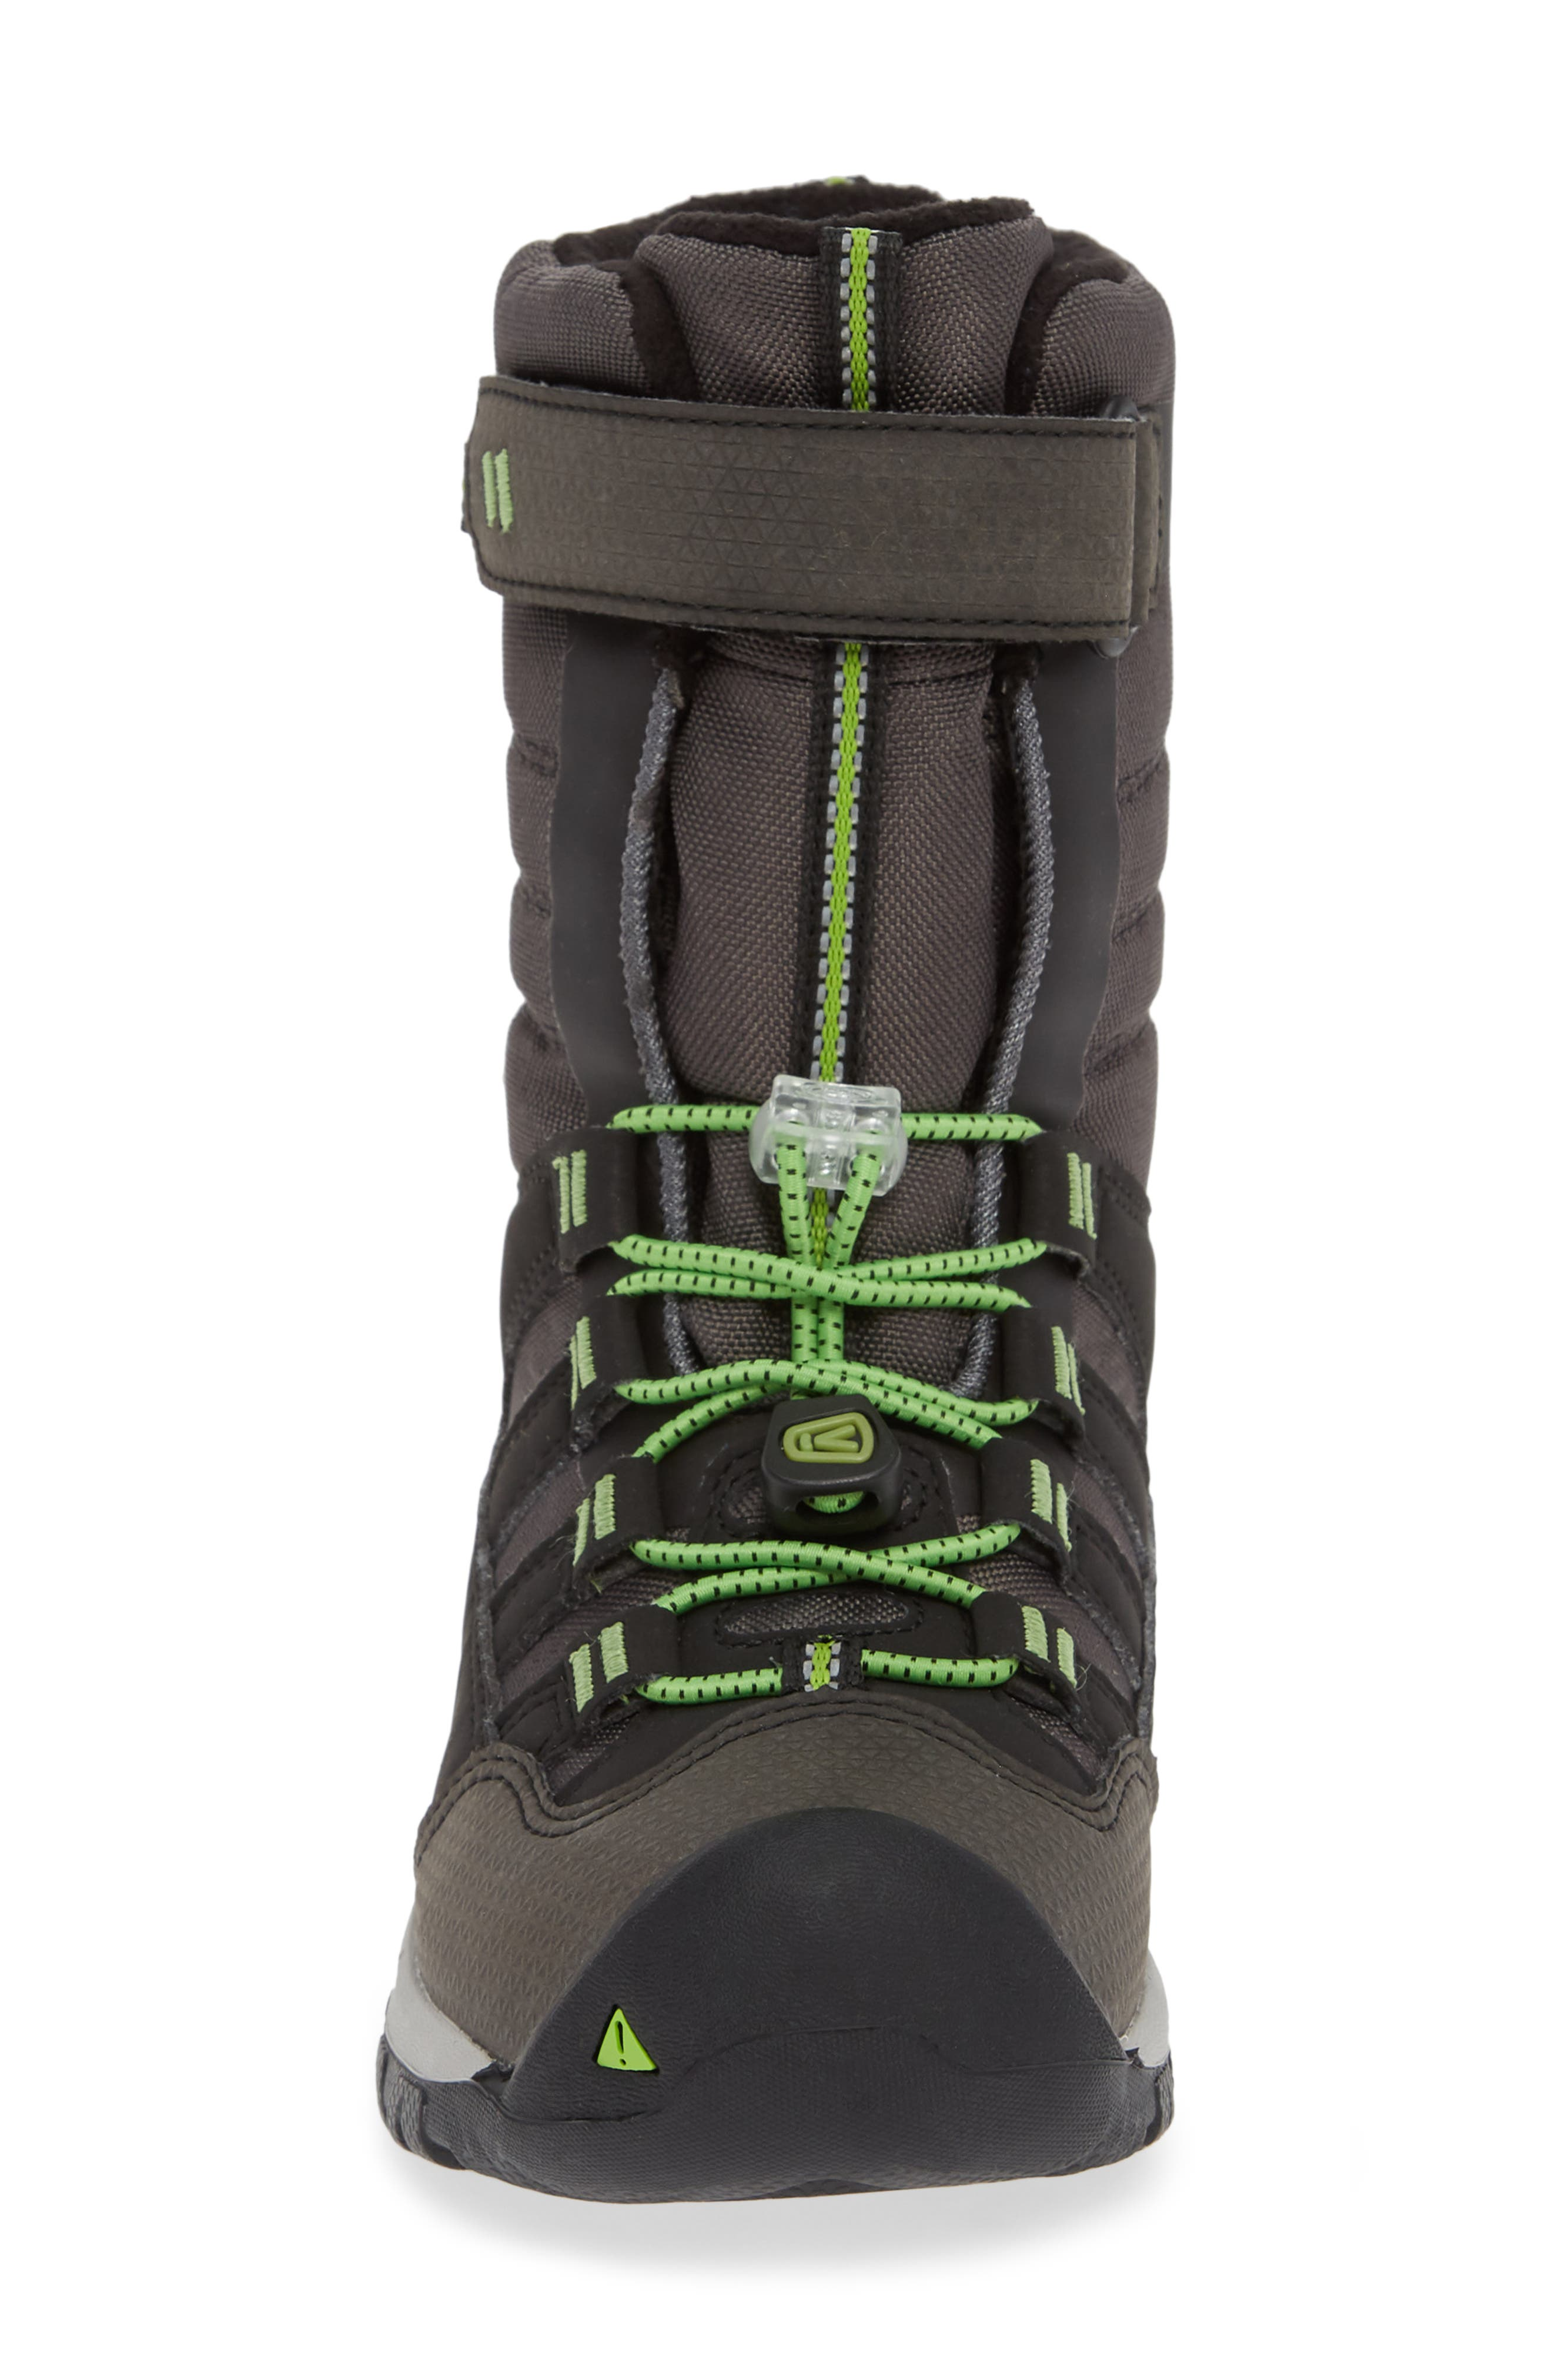 Winterport Neo Waterproof Insulated Boot,                             Alternate thumbnail 4, color,                             BLACK/ GREENERY